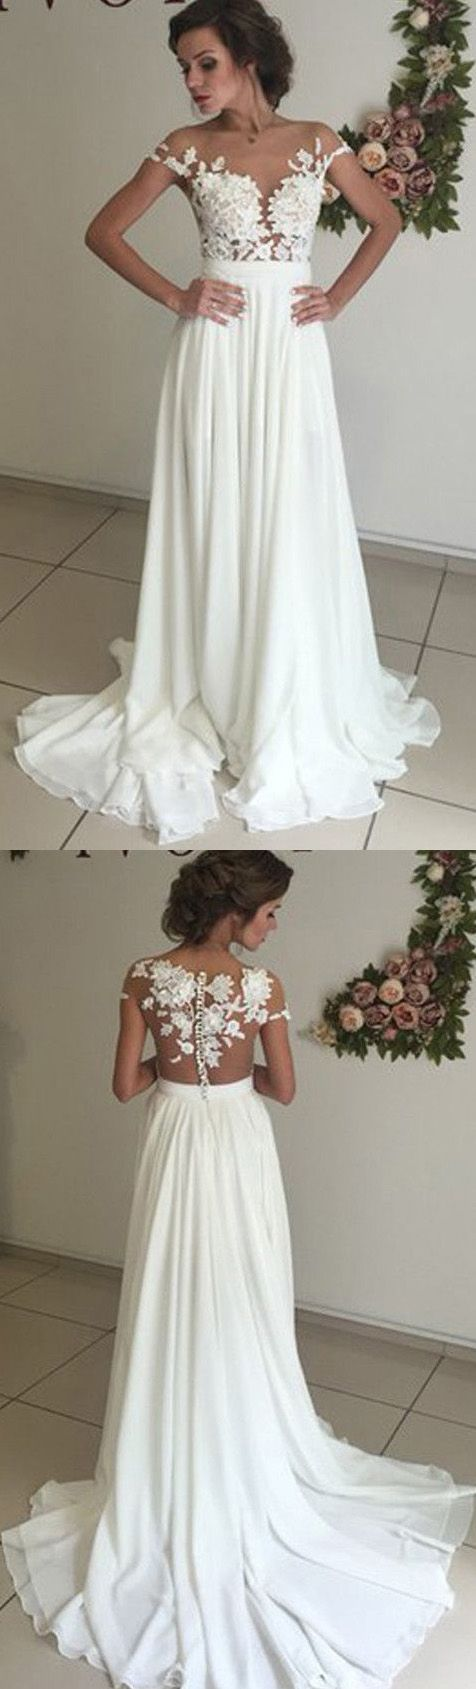 Wedding dresses with long sleeves  Discount Cap Sleeve Ivory Wedding Dresses Comfortable Long Aline